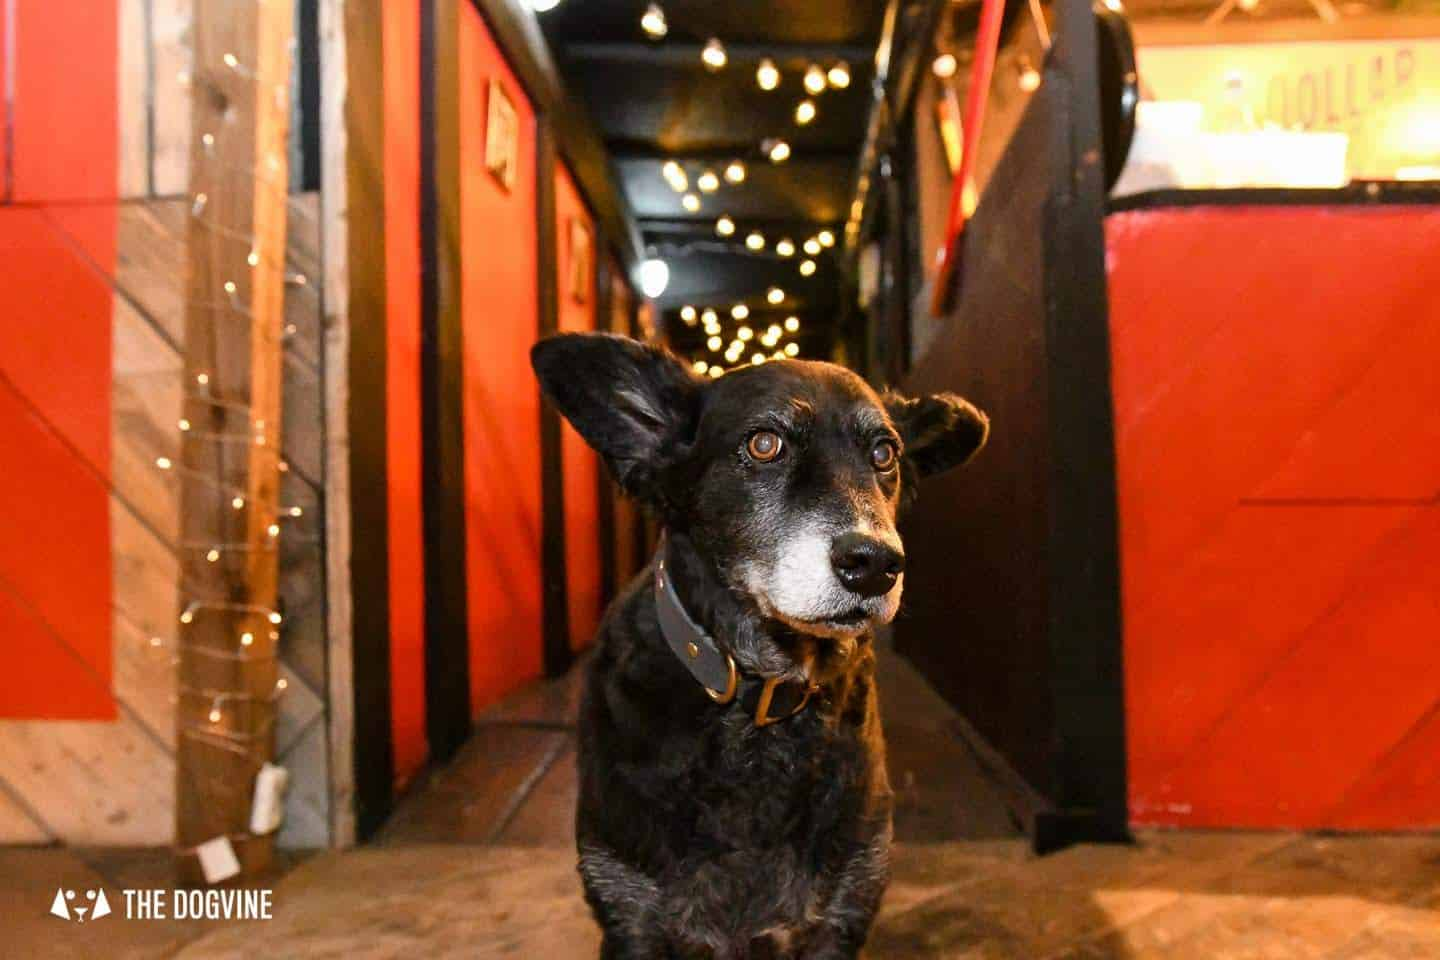 5 Reasons To Go To The Dog-friendly Bussey Rooftop Bar This Winter 23